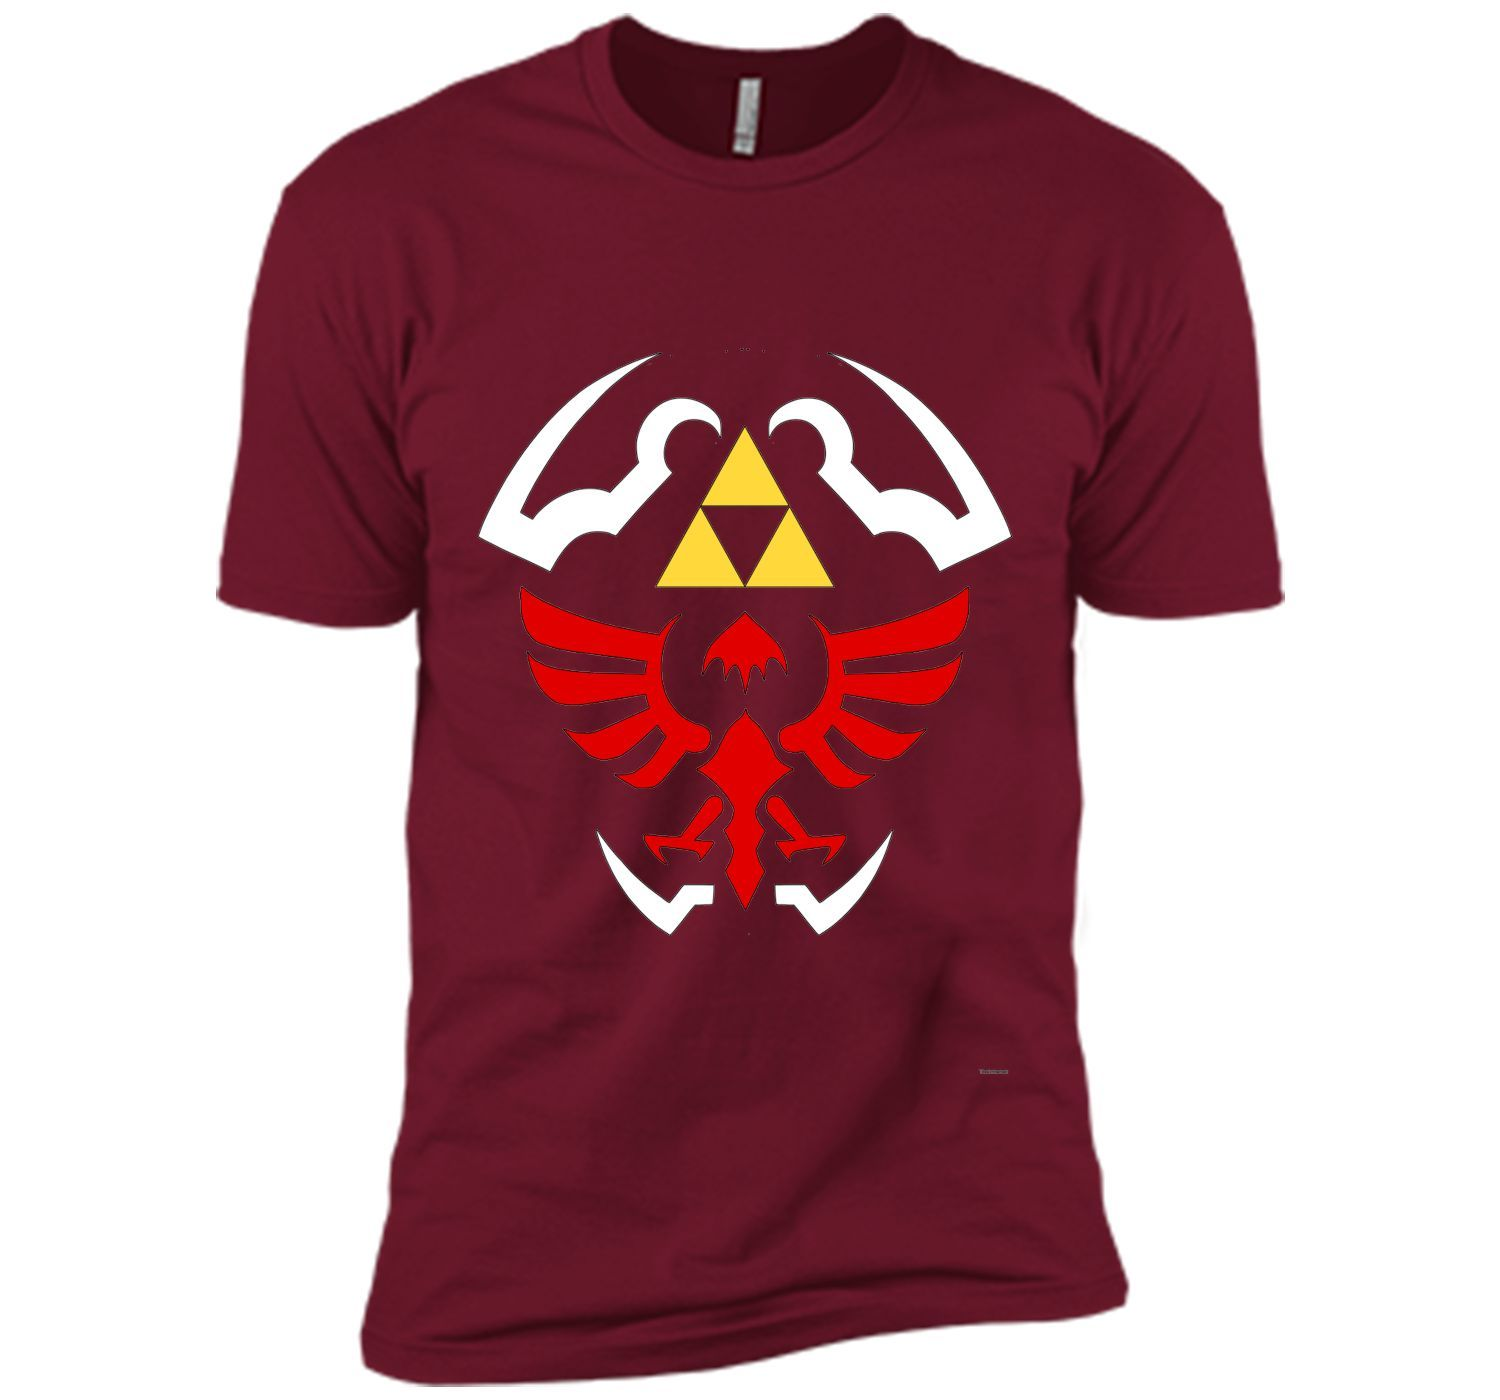 Hylian Shield - Legend of Zelda tshirt